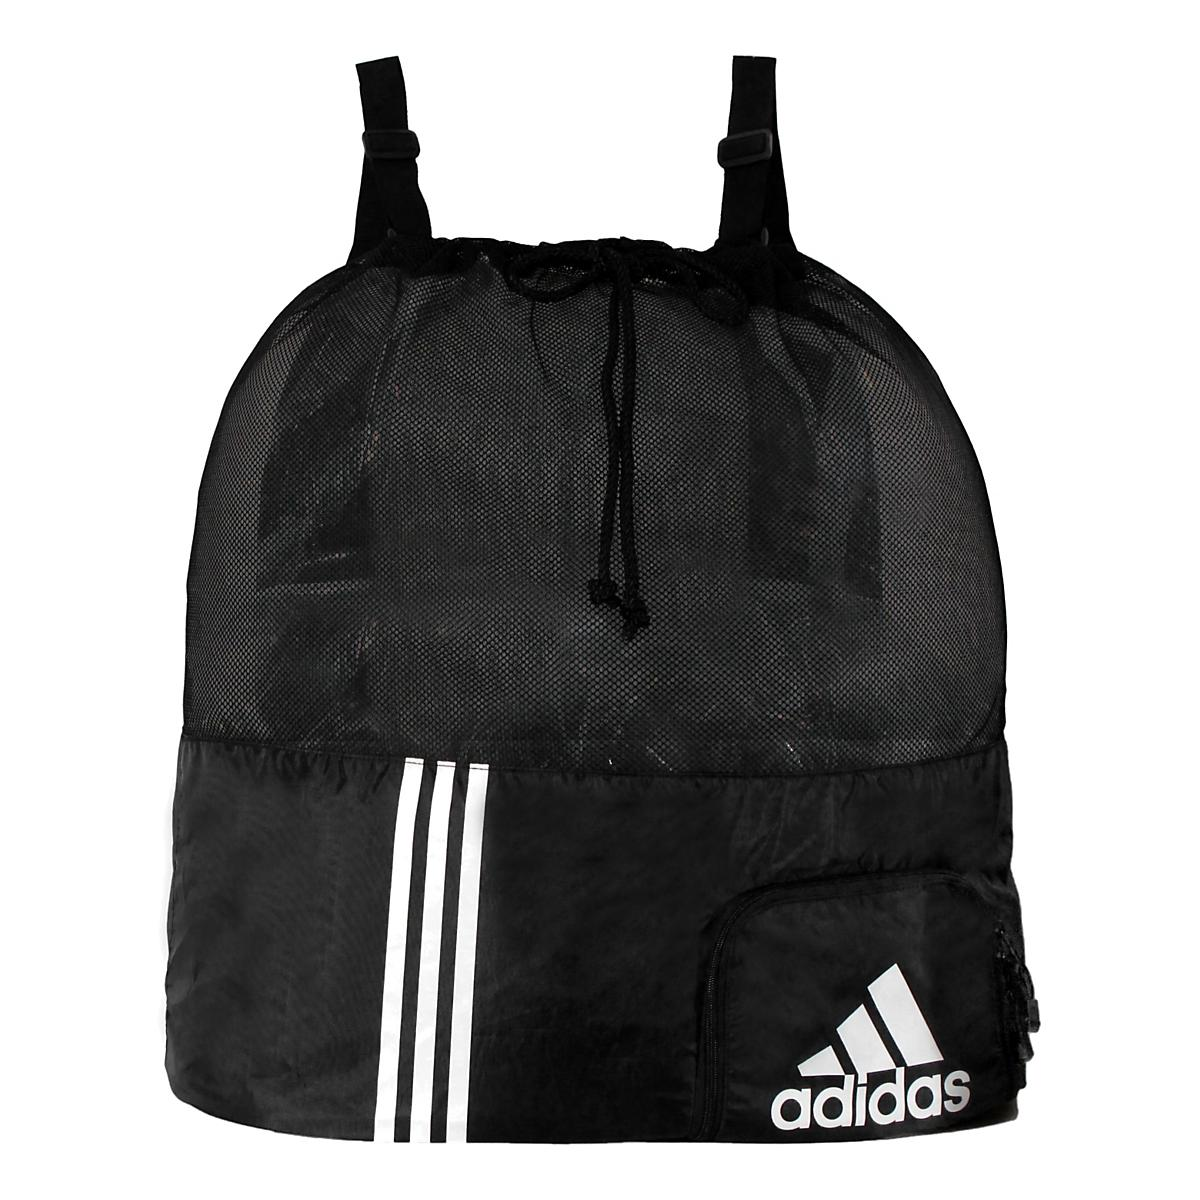 adidas�Tournament Ball Bag